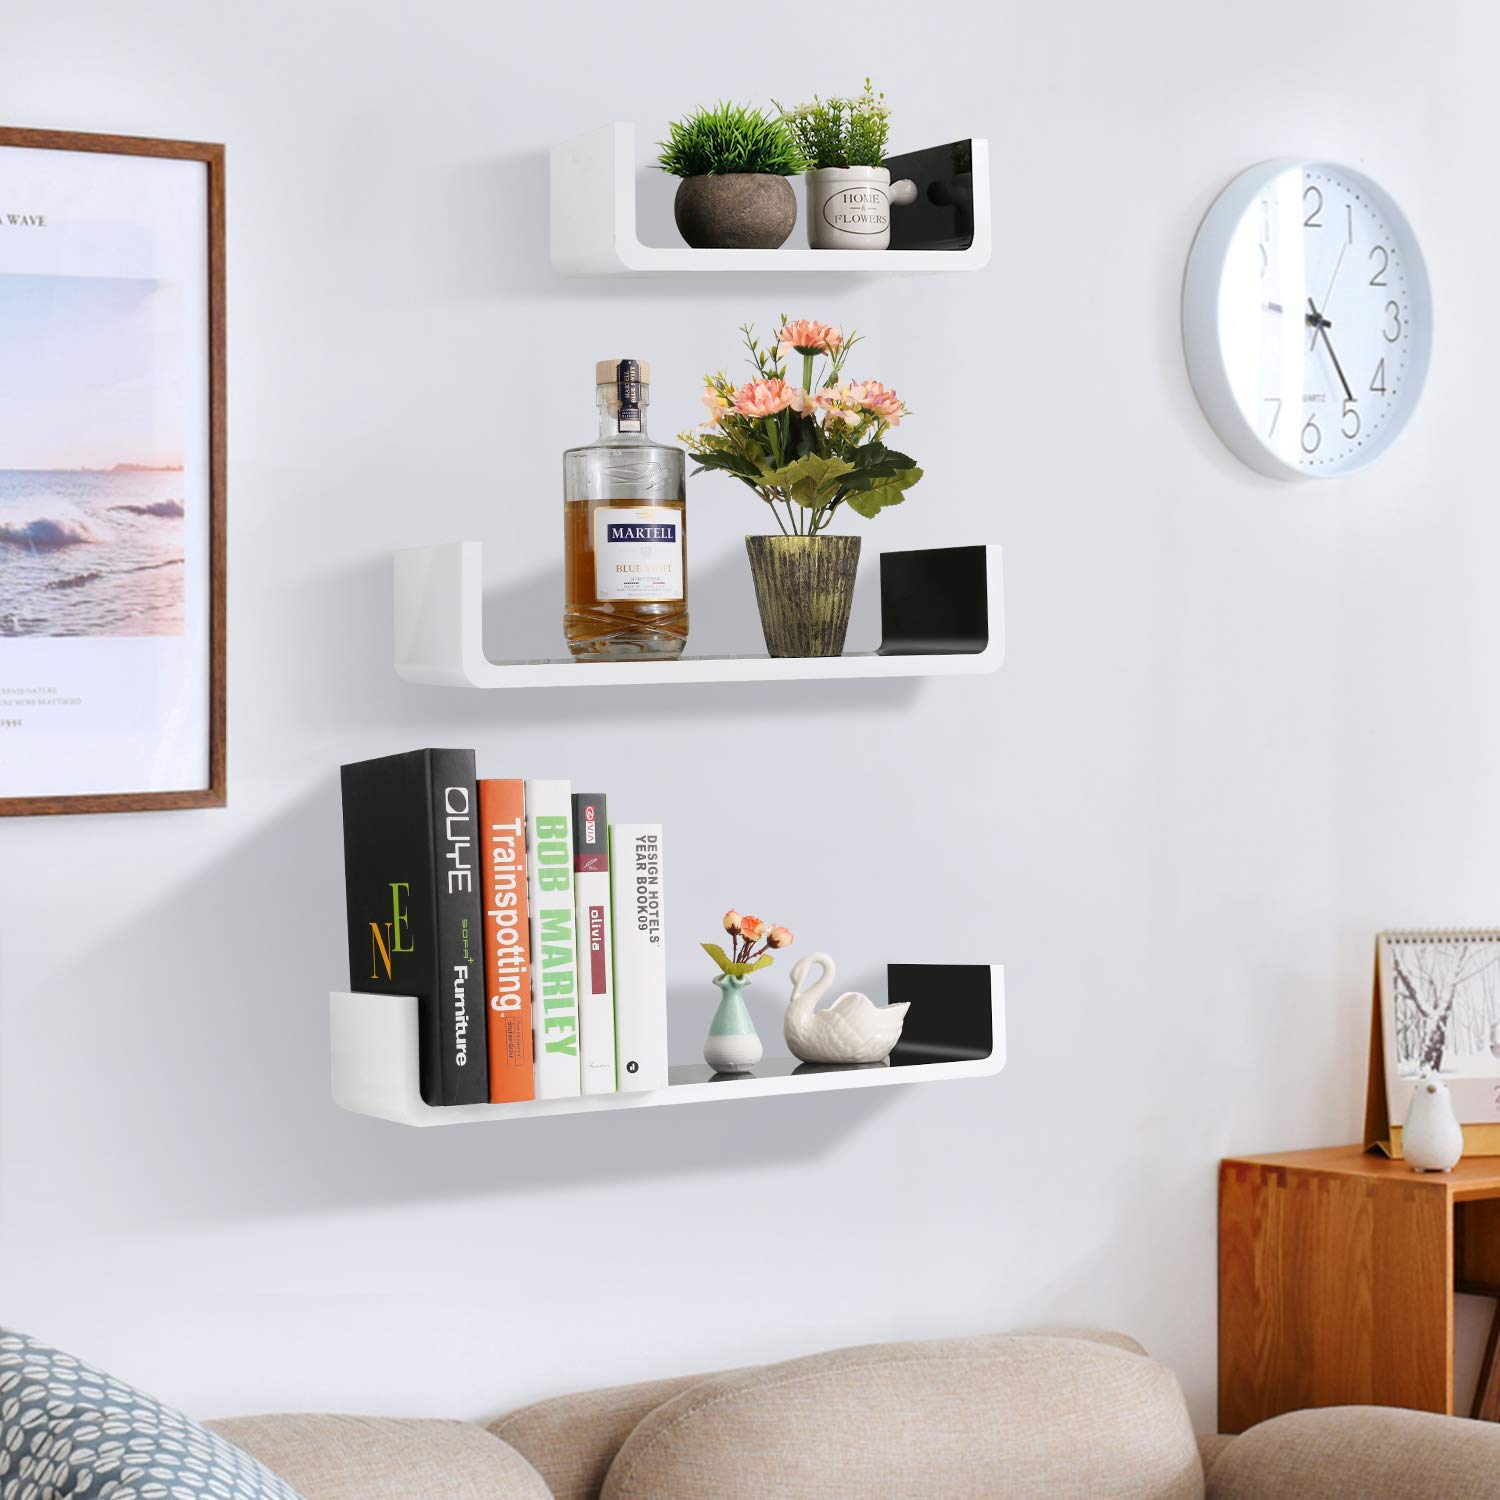 white and black wall shelves floating wooden qal bathroom shelving bookshelf storage set shape mount bookcase for living room stone fireplace shelf hand forged brackets diy shower